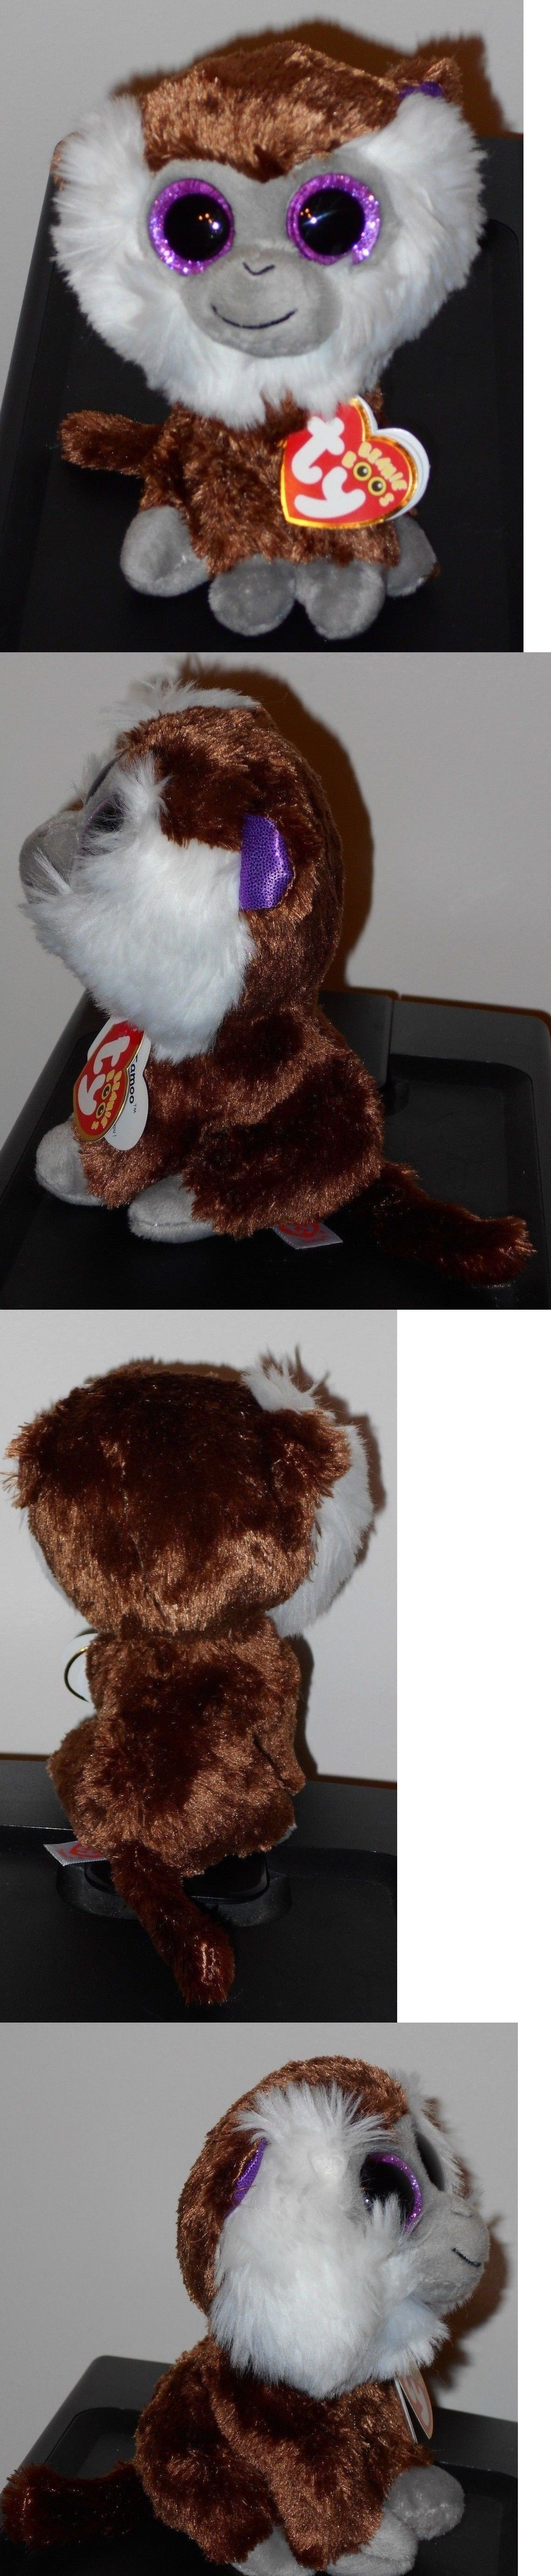 Current 438  Ty Beanie Boos ~ Tamoo The 6 Monkey (Glitter Eyes) New Mwmt  European Exclusive -  BUY IT NOW ONLY   10.9 on eBay! 62acead080c4